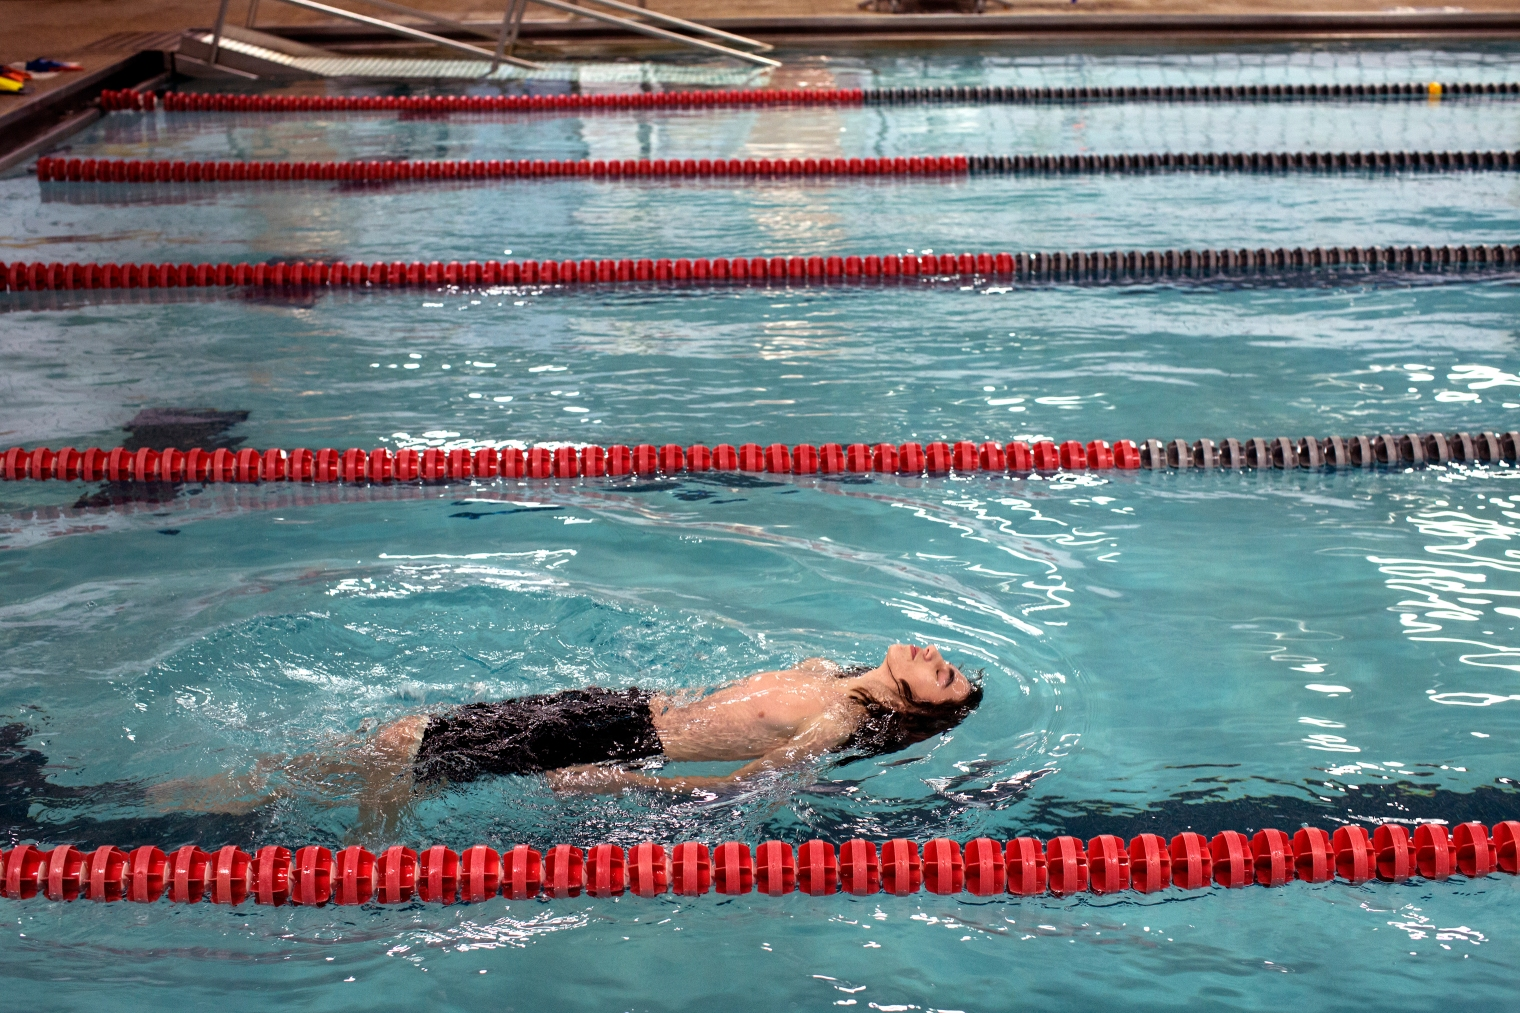 Nazeer Tameem swims at recreation facility.